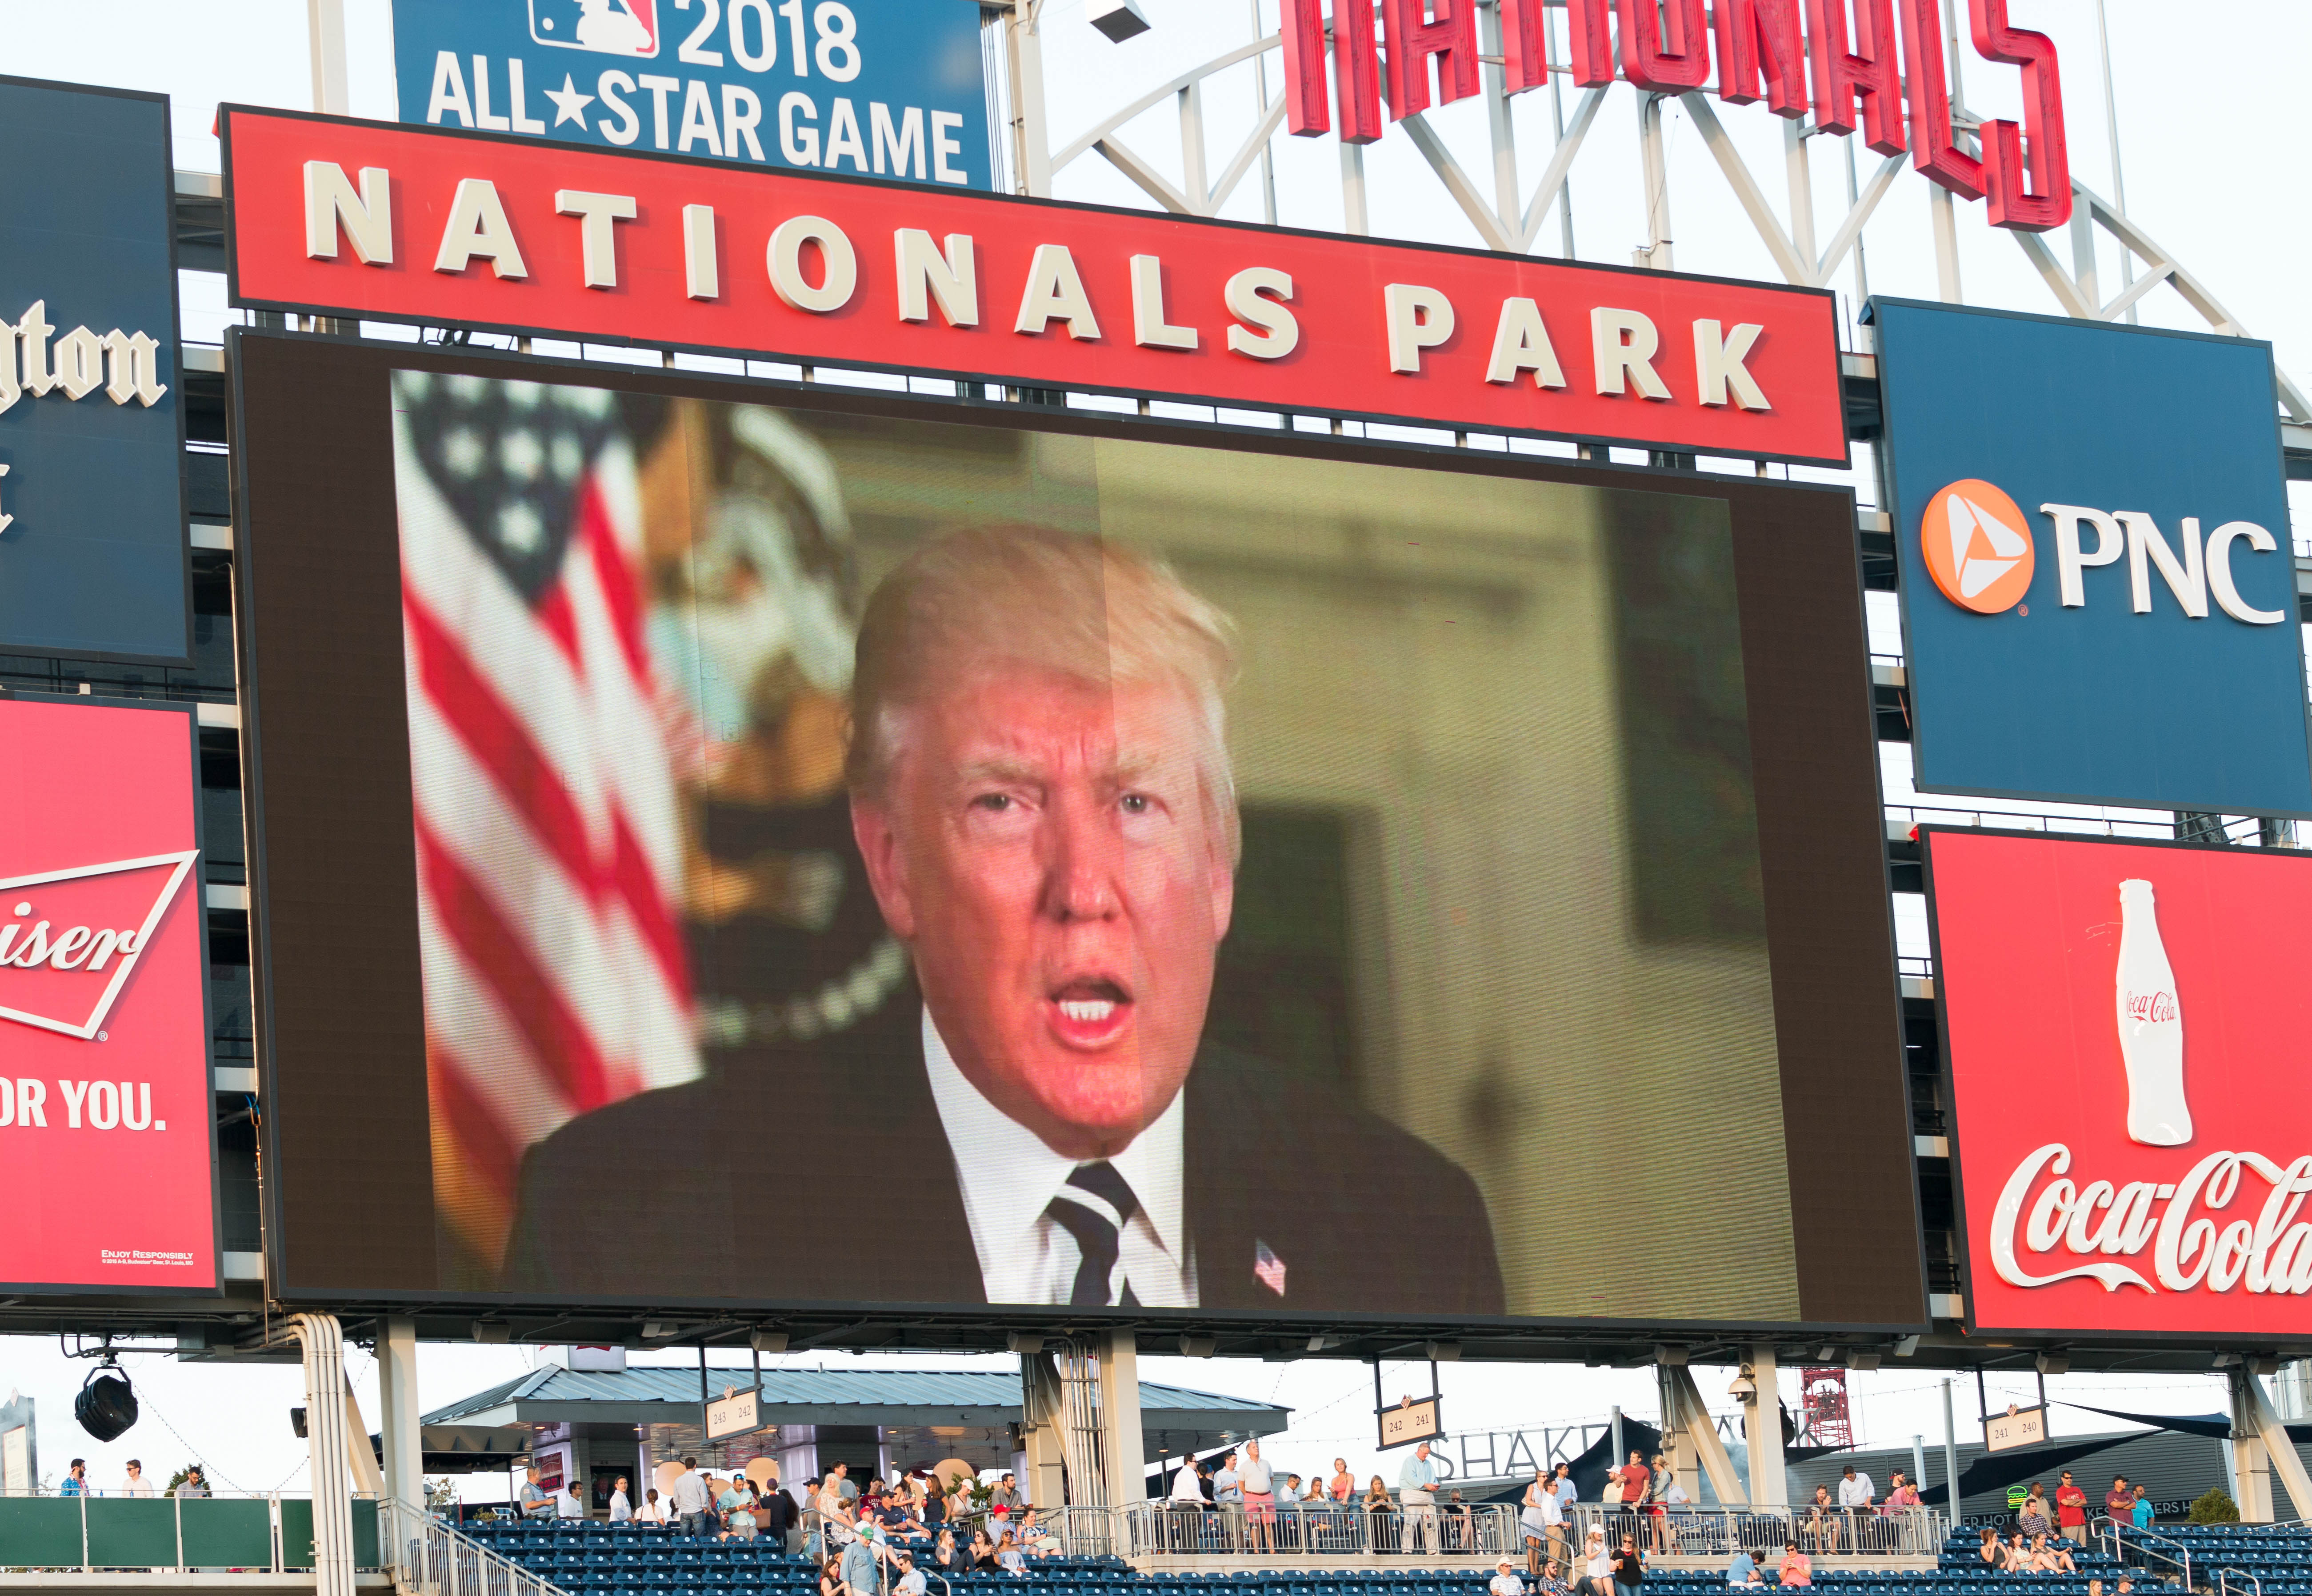 President Trump delivered a recorded video message to the game attendants at the Congressional Baseball Game on Thursday. (Paul Huang)